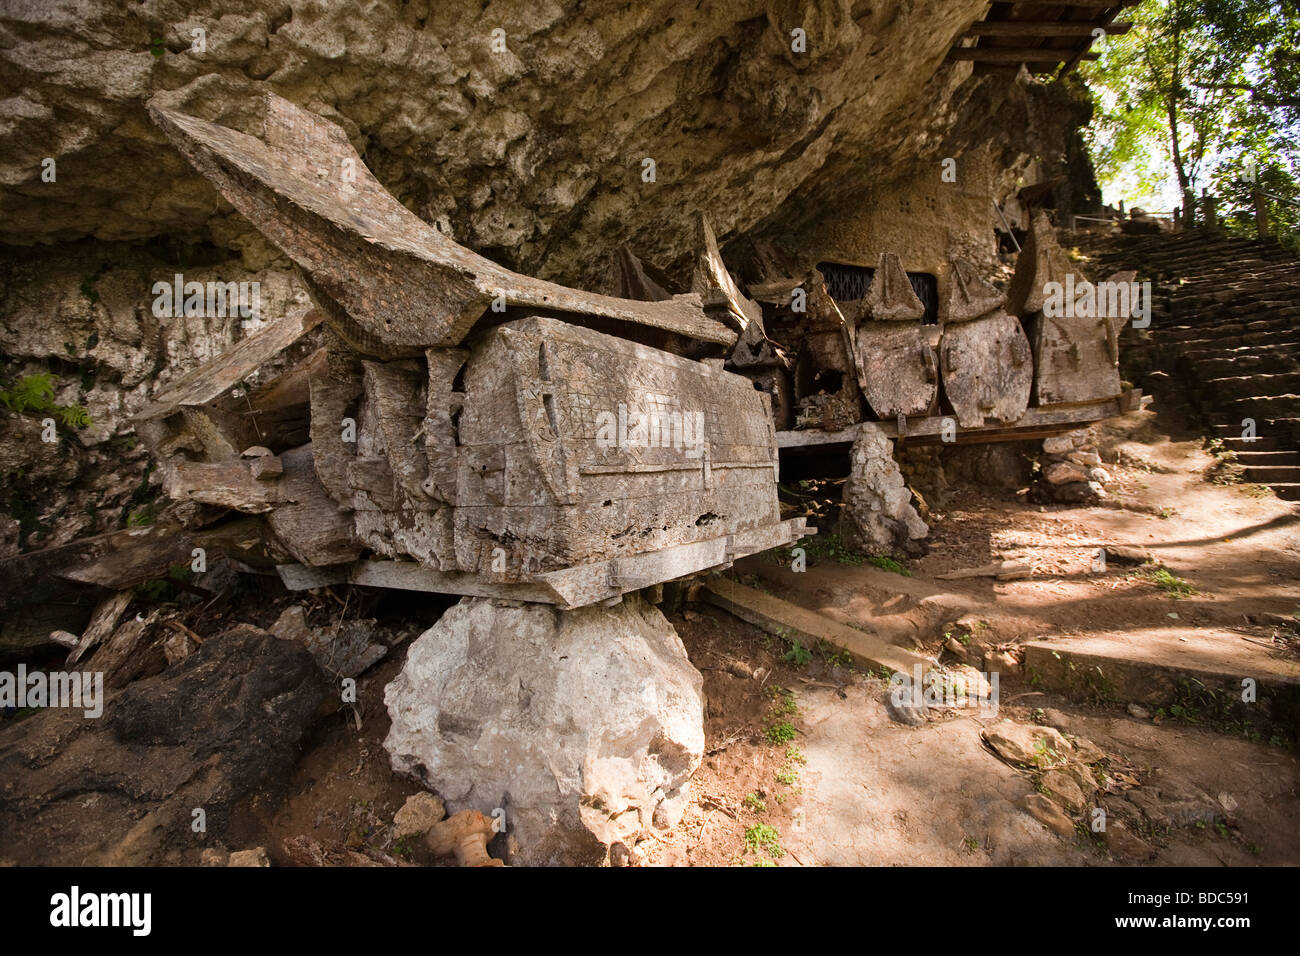 Indonesia Sulawesi Tana Toraja Kete Kesu ancient carved wooden coffin rotting in village burial ground - Stock Image